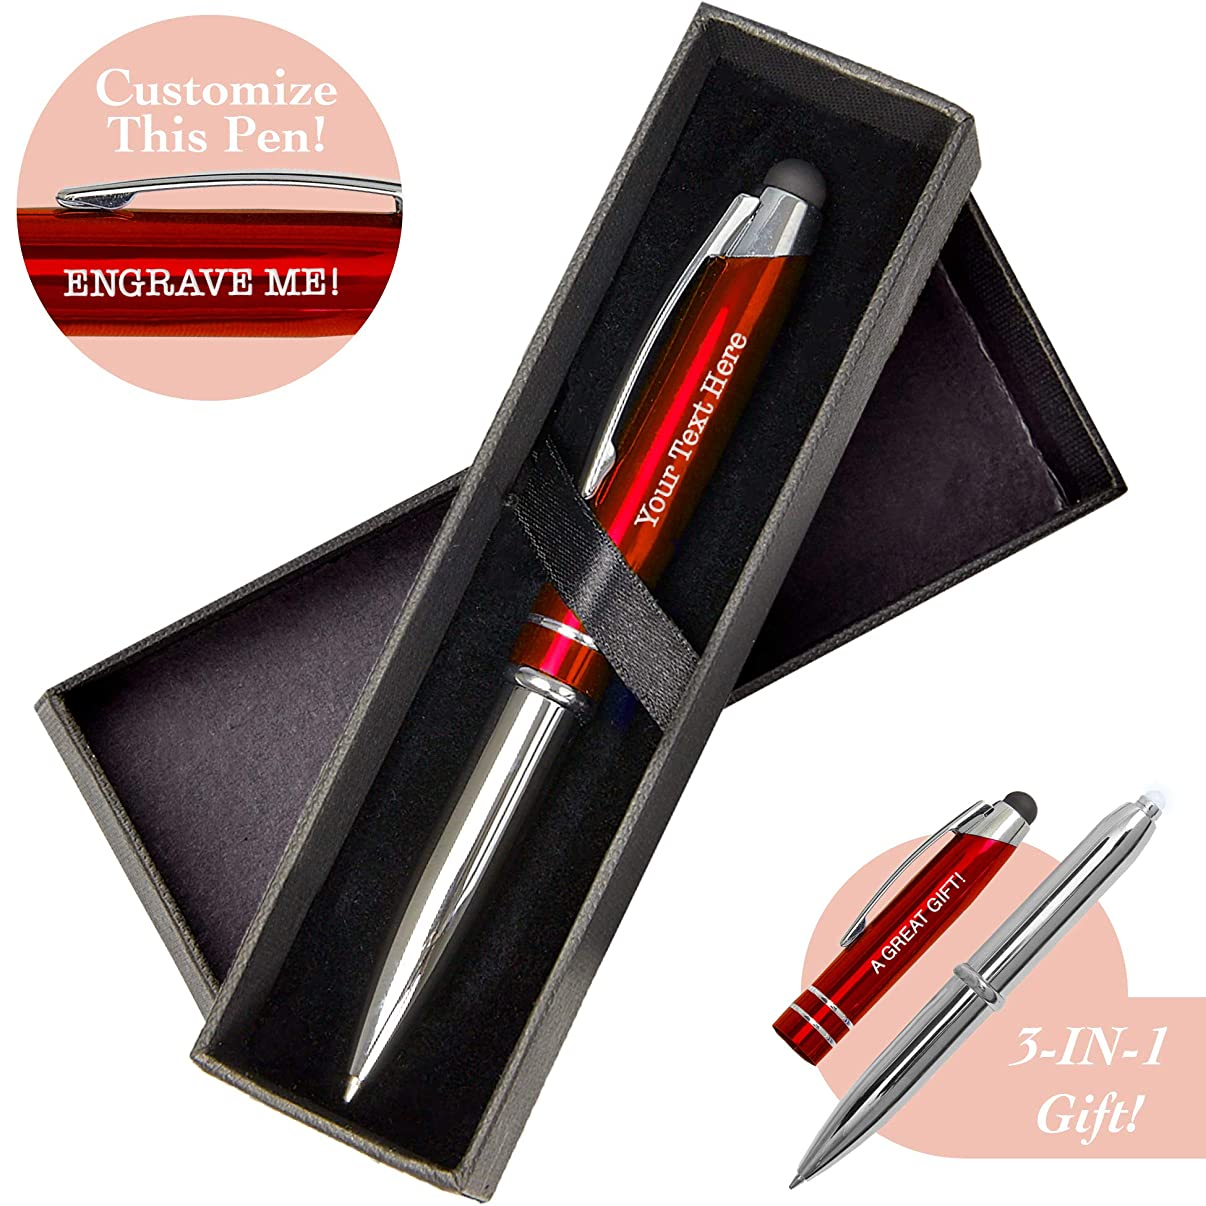 Red Custom Pen Stylus - Personalize and Customize Gifts and Branding with Free Laser Engraving - Multifunction Ballpoint Pen, Flashlight and Stylus for Tablets and Touchscreens – by SyPen